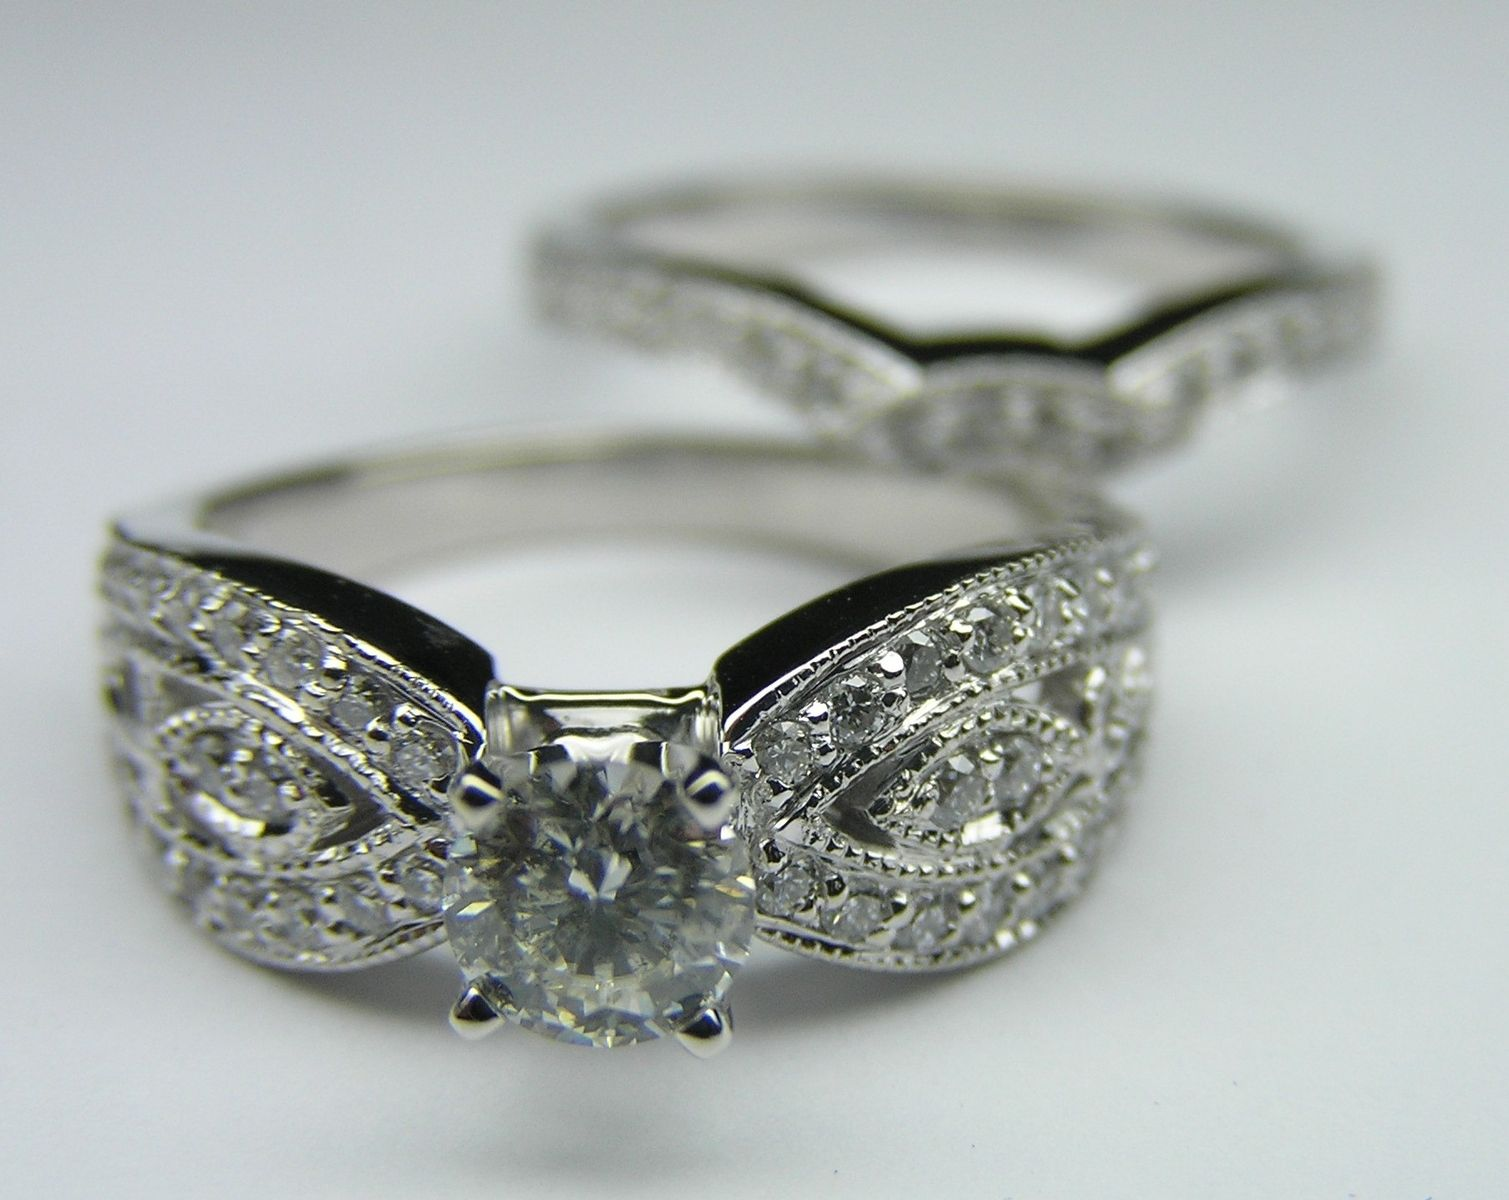 hand crafted round diamond butterfly engagement ring matching wedding band bridal set in 14k white gold with initials incorporated into the design - Butterfly Wedding Rings